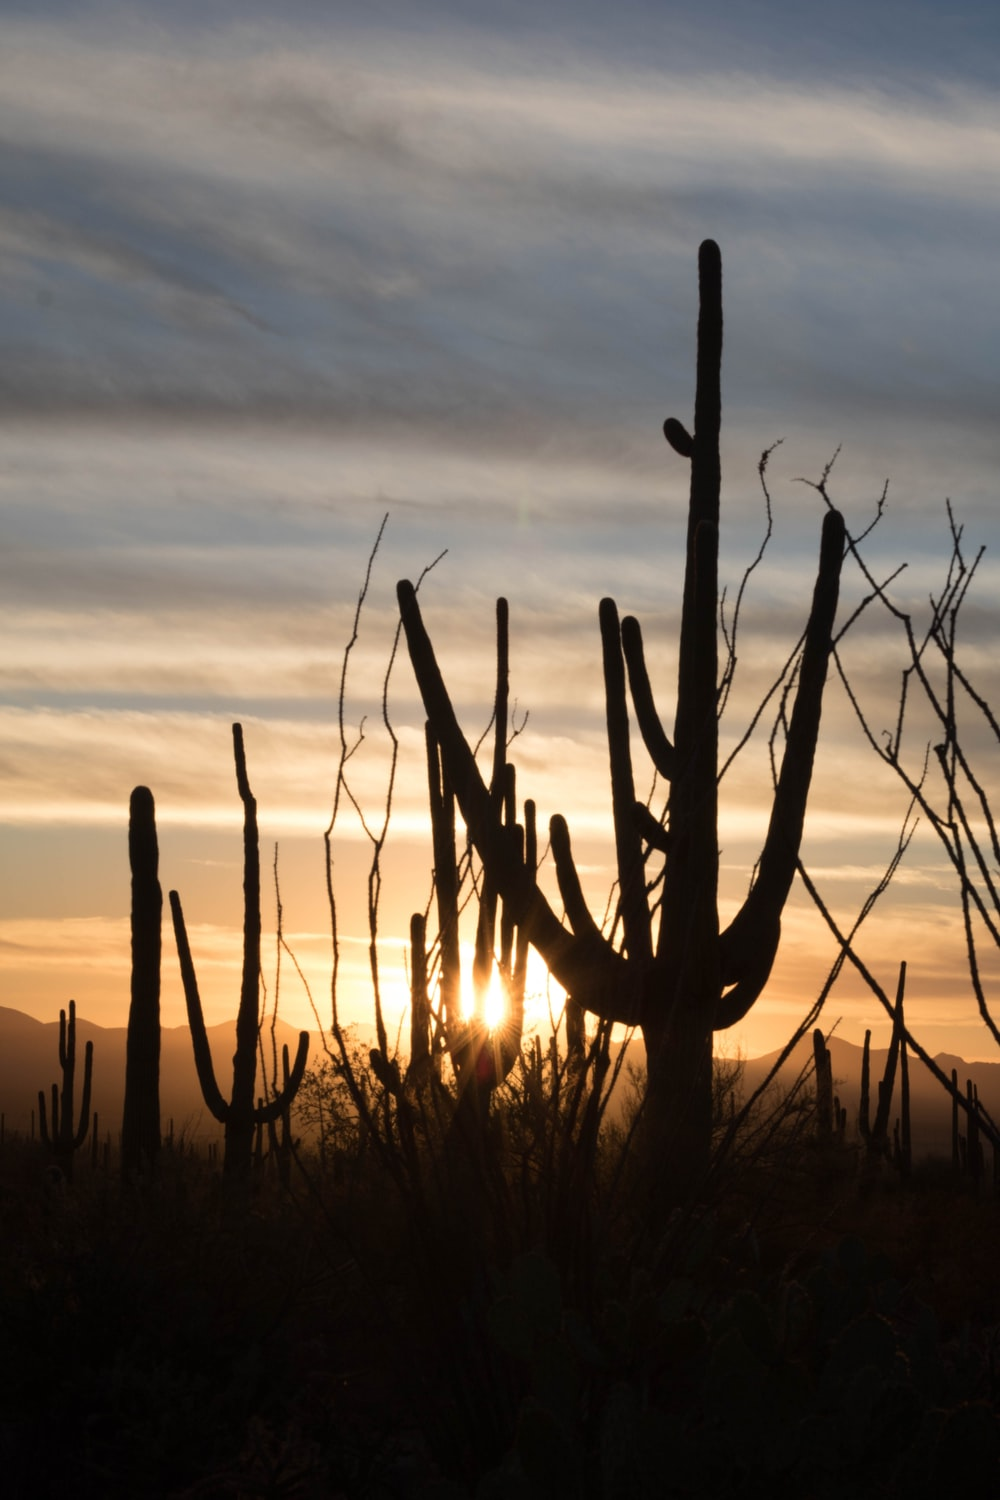 cacti silhouette across sunset photo